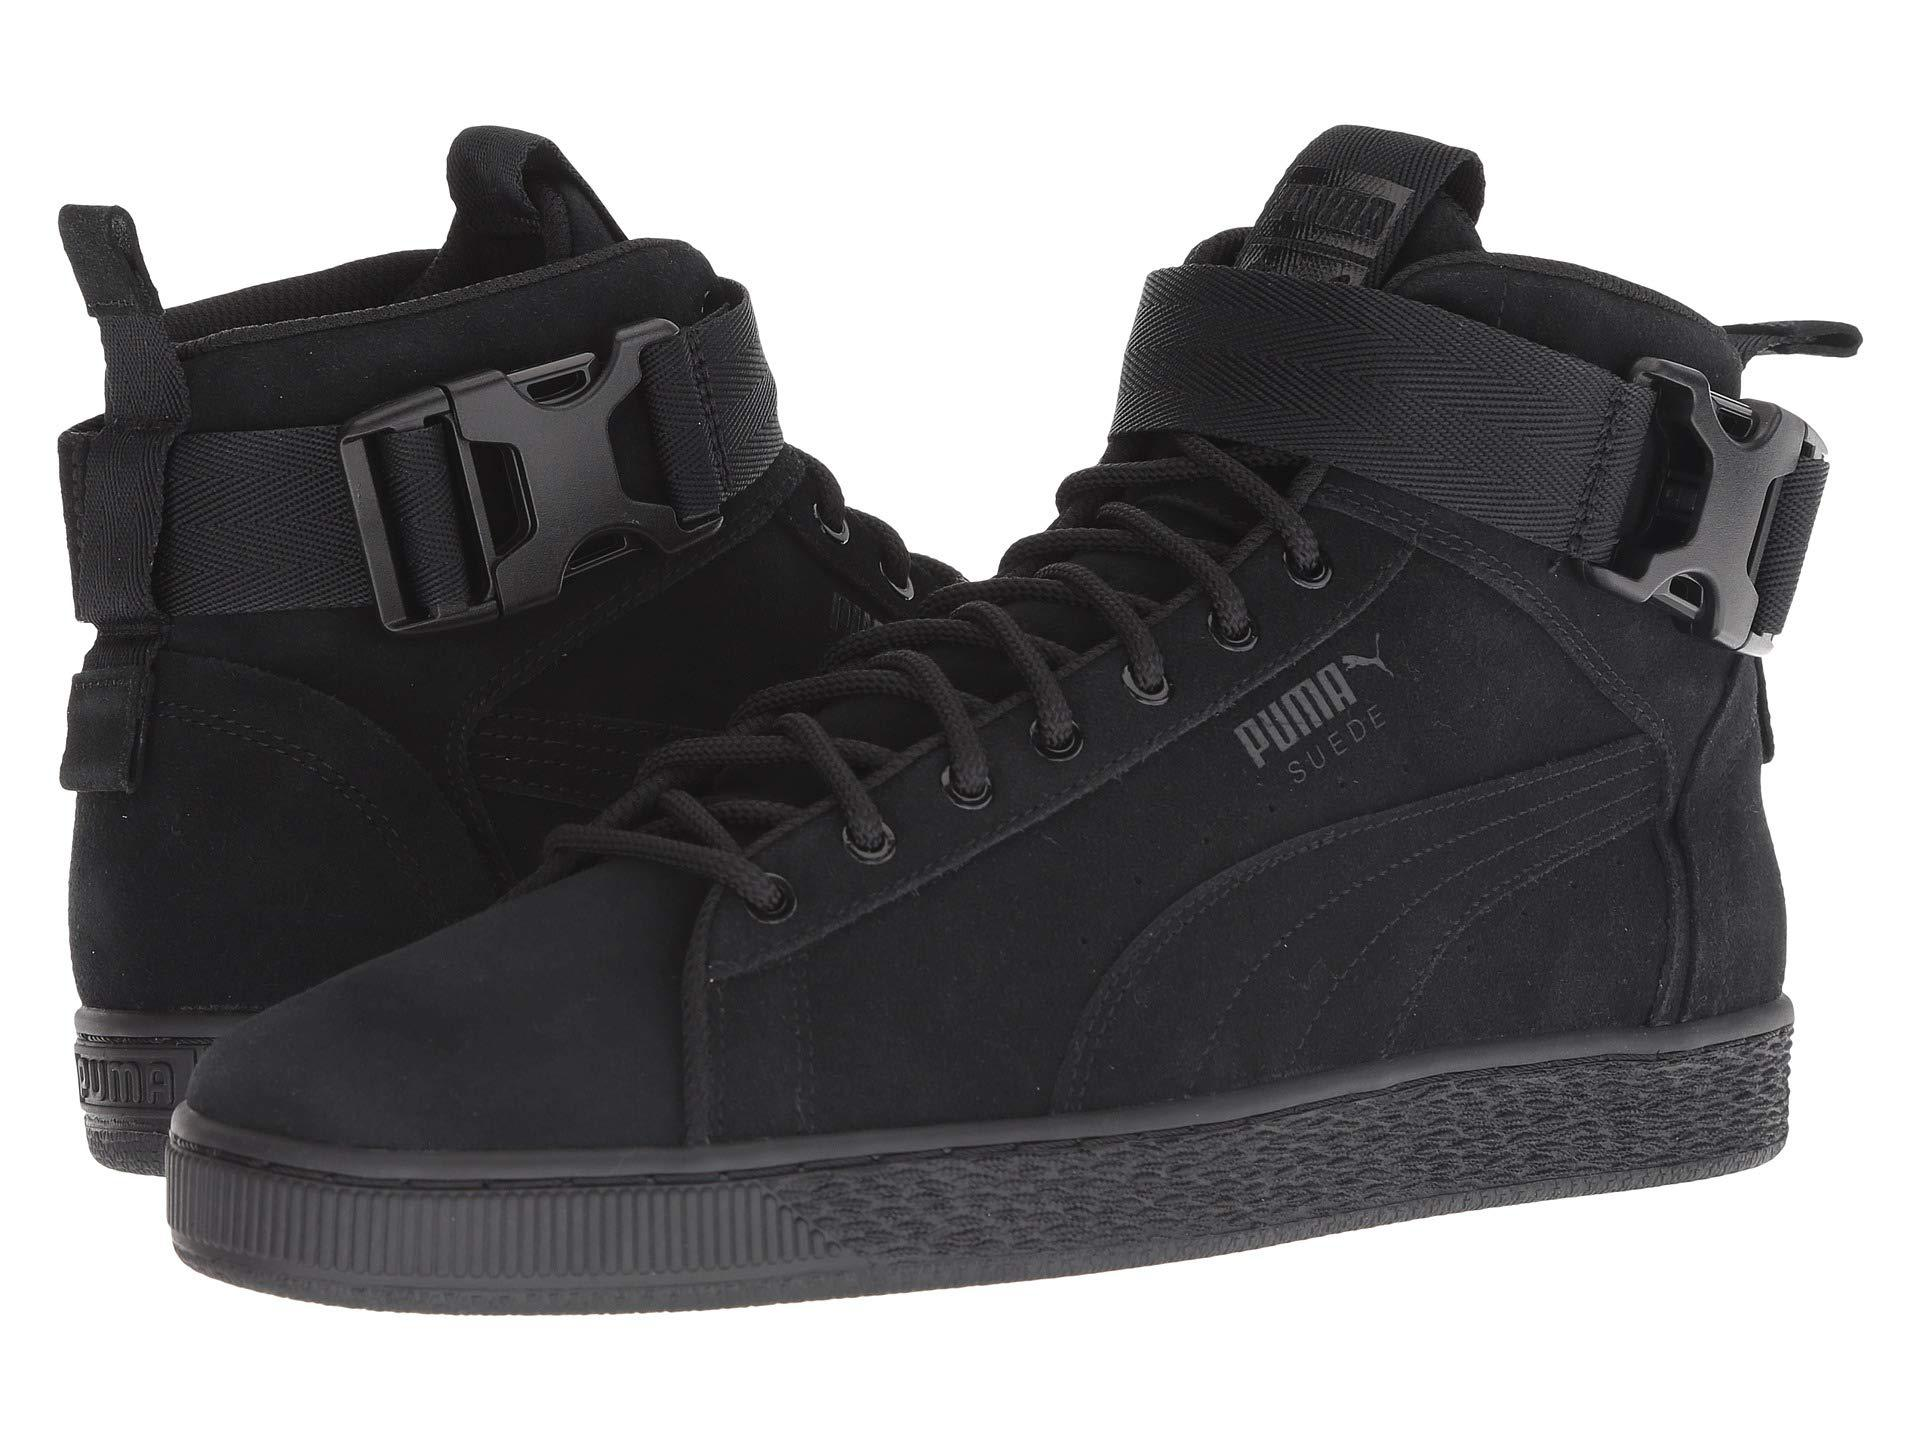 Lyst - PUMA Suede Classic Mid Buckle ( Black  Black) Men s Boots in ... 641bd73ca